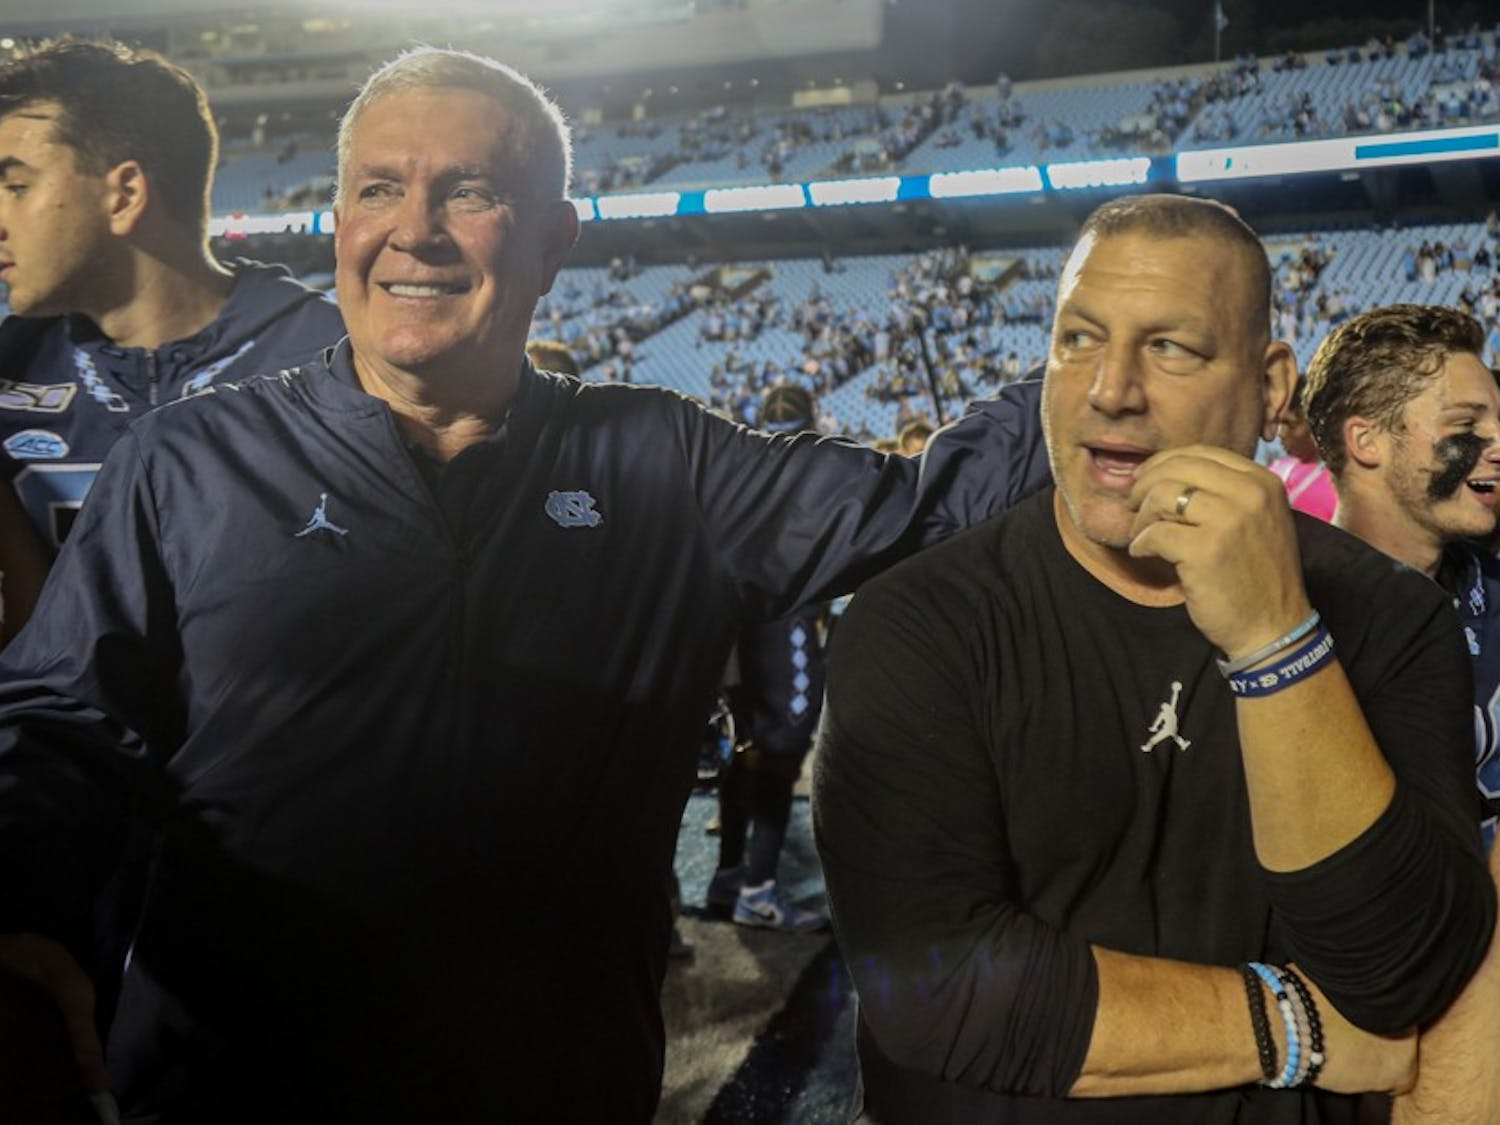 Head Coach Mack Brown and Offensive coordinator Phil Longo celebrate UNC's win on Saturday, Oct. 26, 2019. UNC defeated Duke 20-17.